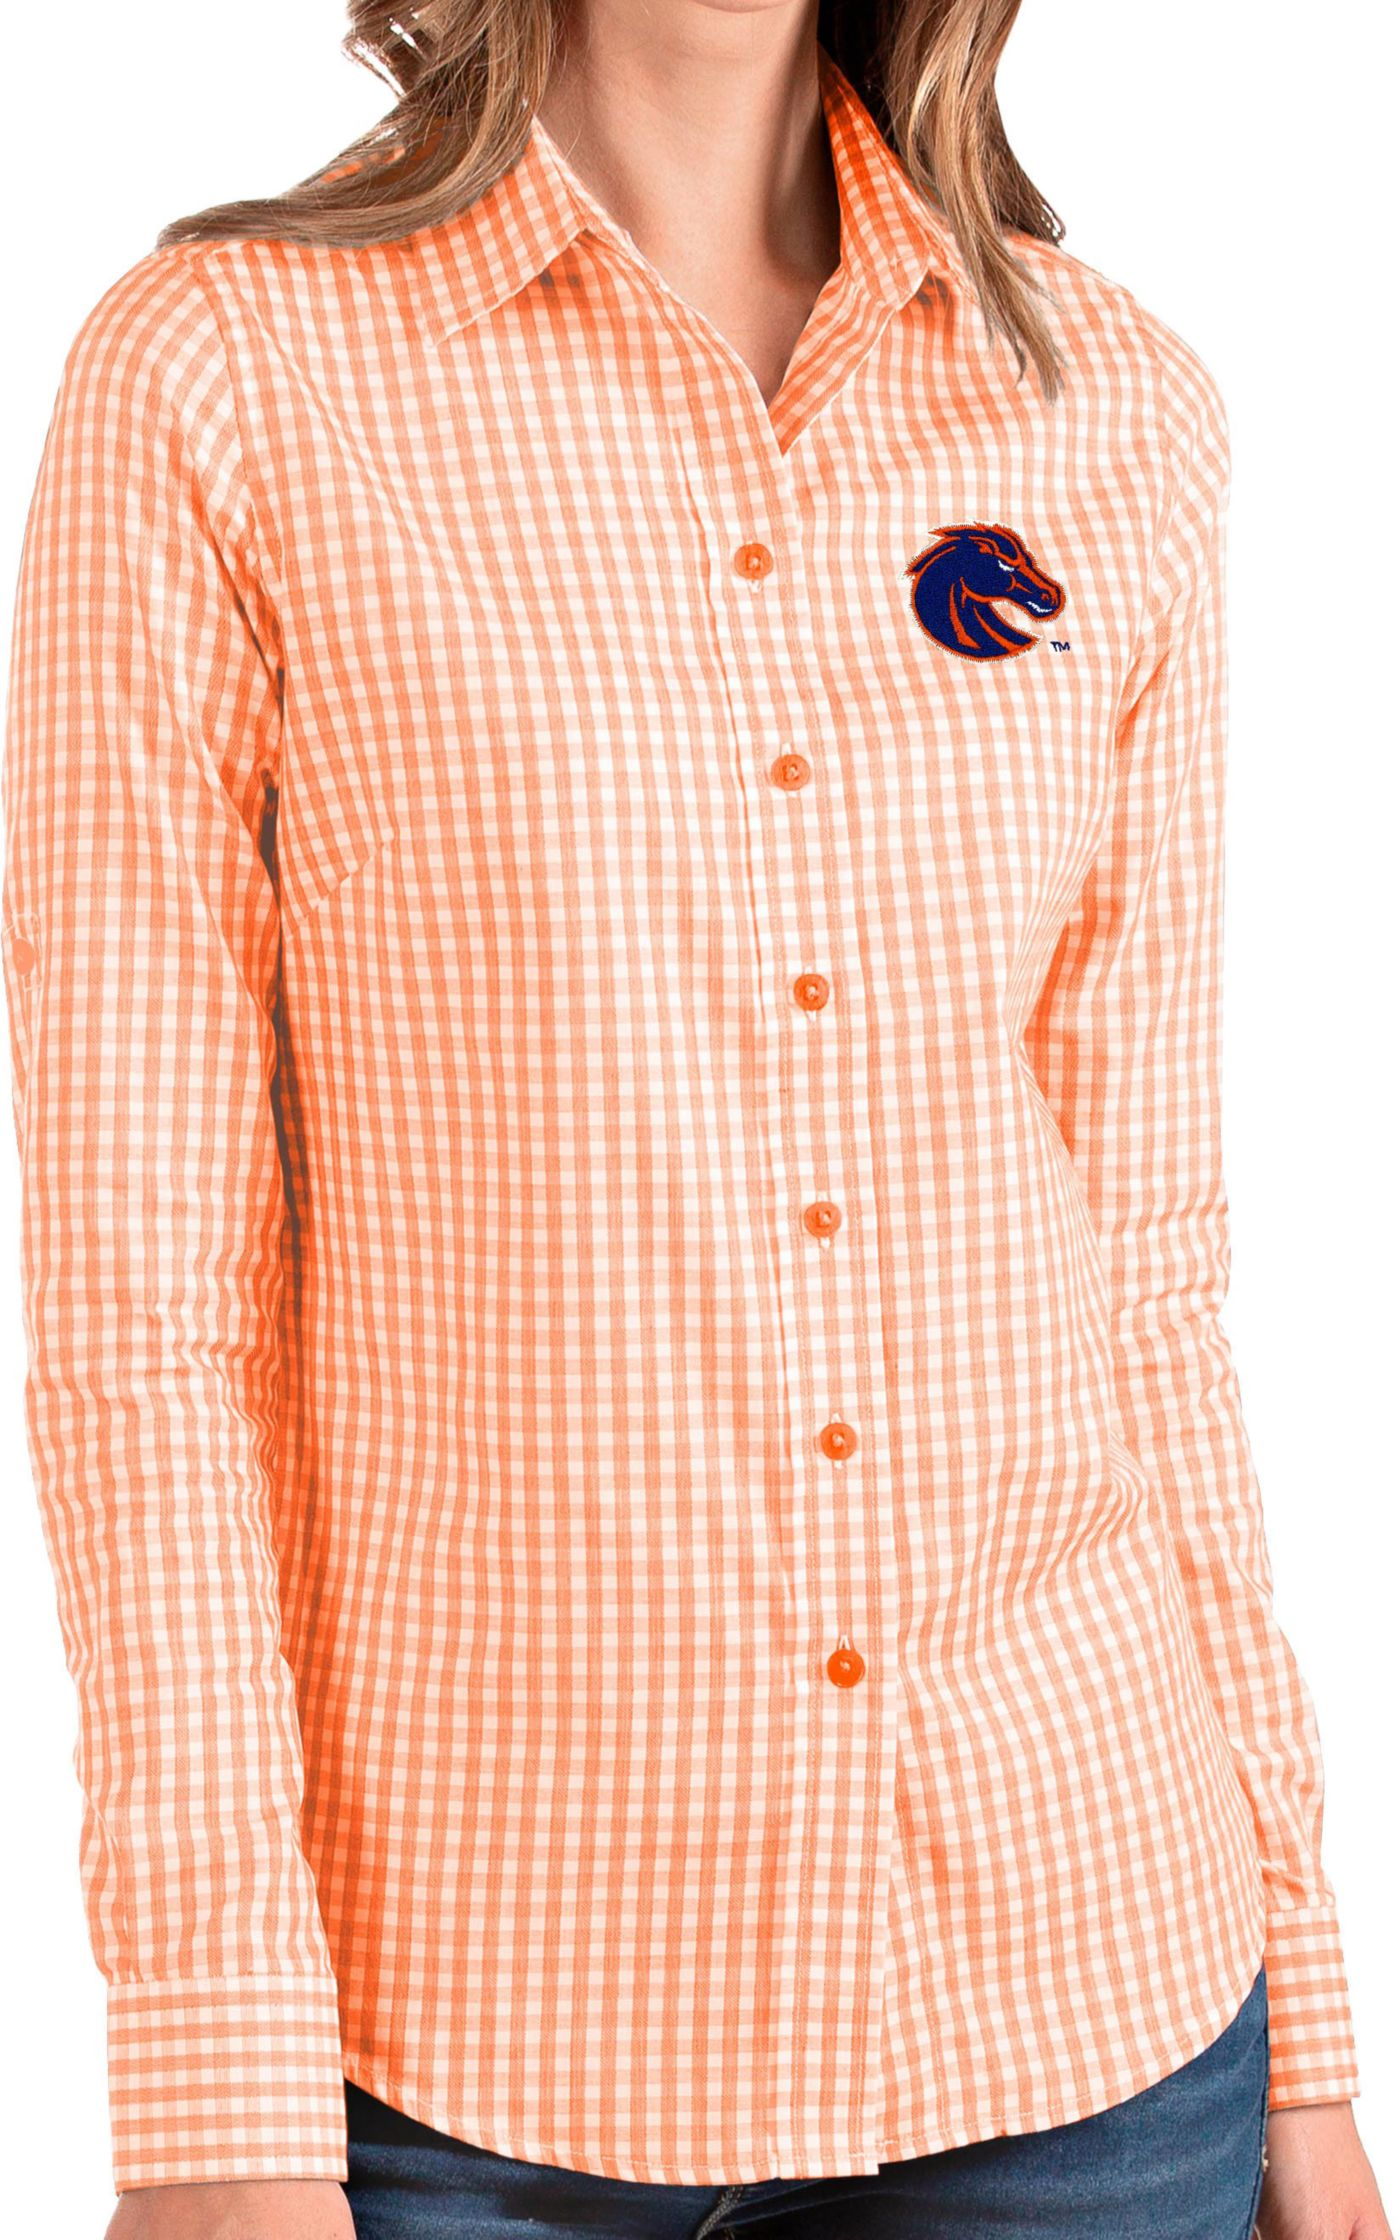 Antigua Women's Boise State Broncos Orange Structure Button Down Long Sleeve Shirt